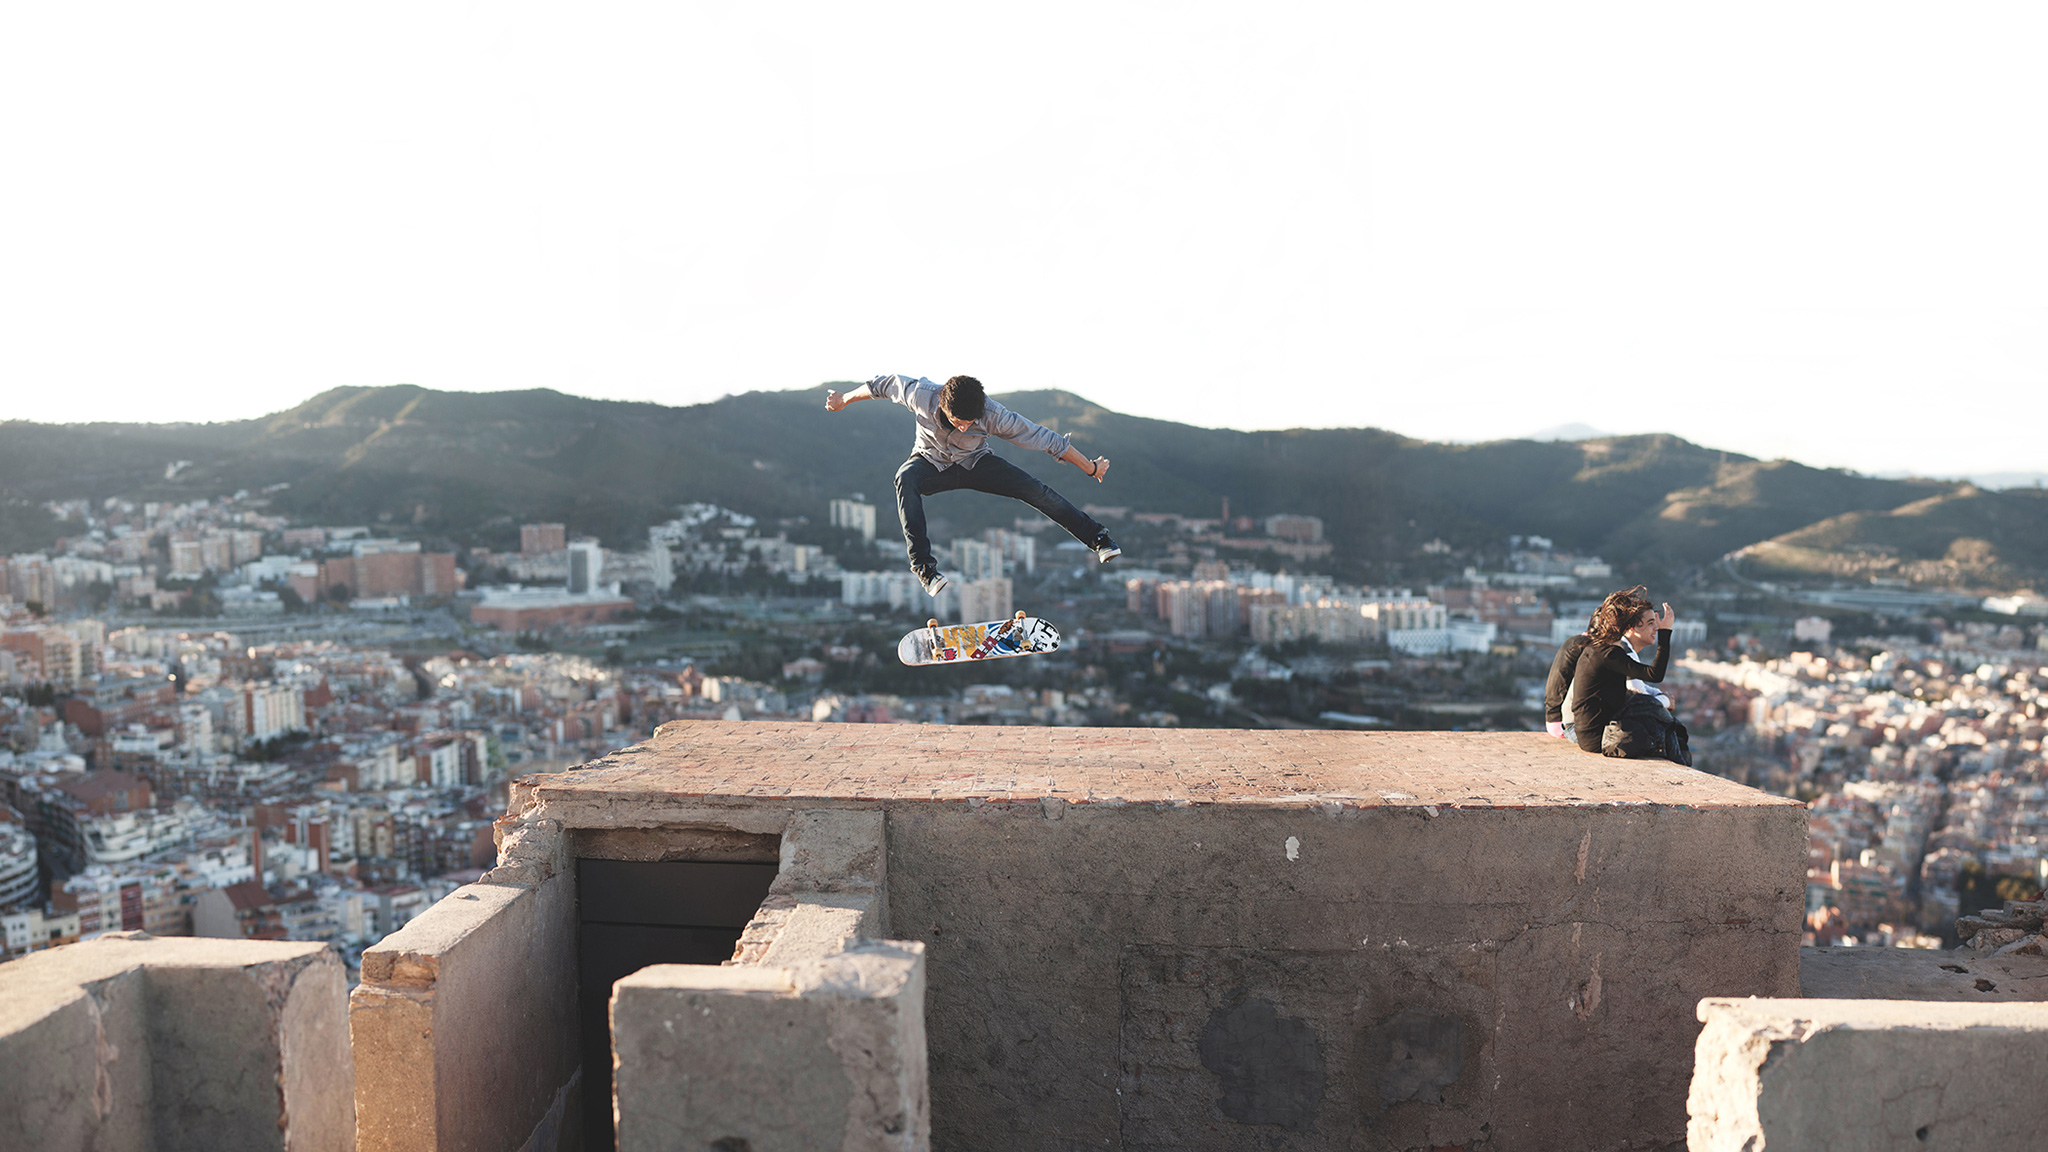 This was taken in Barcelona. I really liked the super-strong composition, but also there are a bunch of tourists completely oblivious to what's going on behind them. It's also on this kind of non-skateable surface, on this rough-looking bunker. This captures very much an instant. -- Alex Hillinger